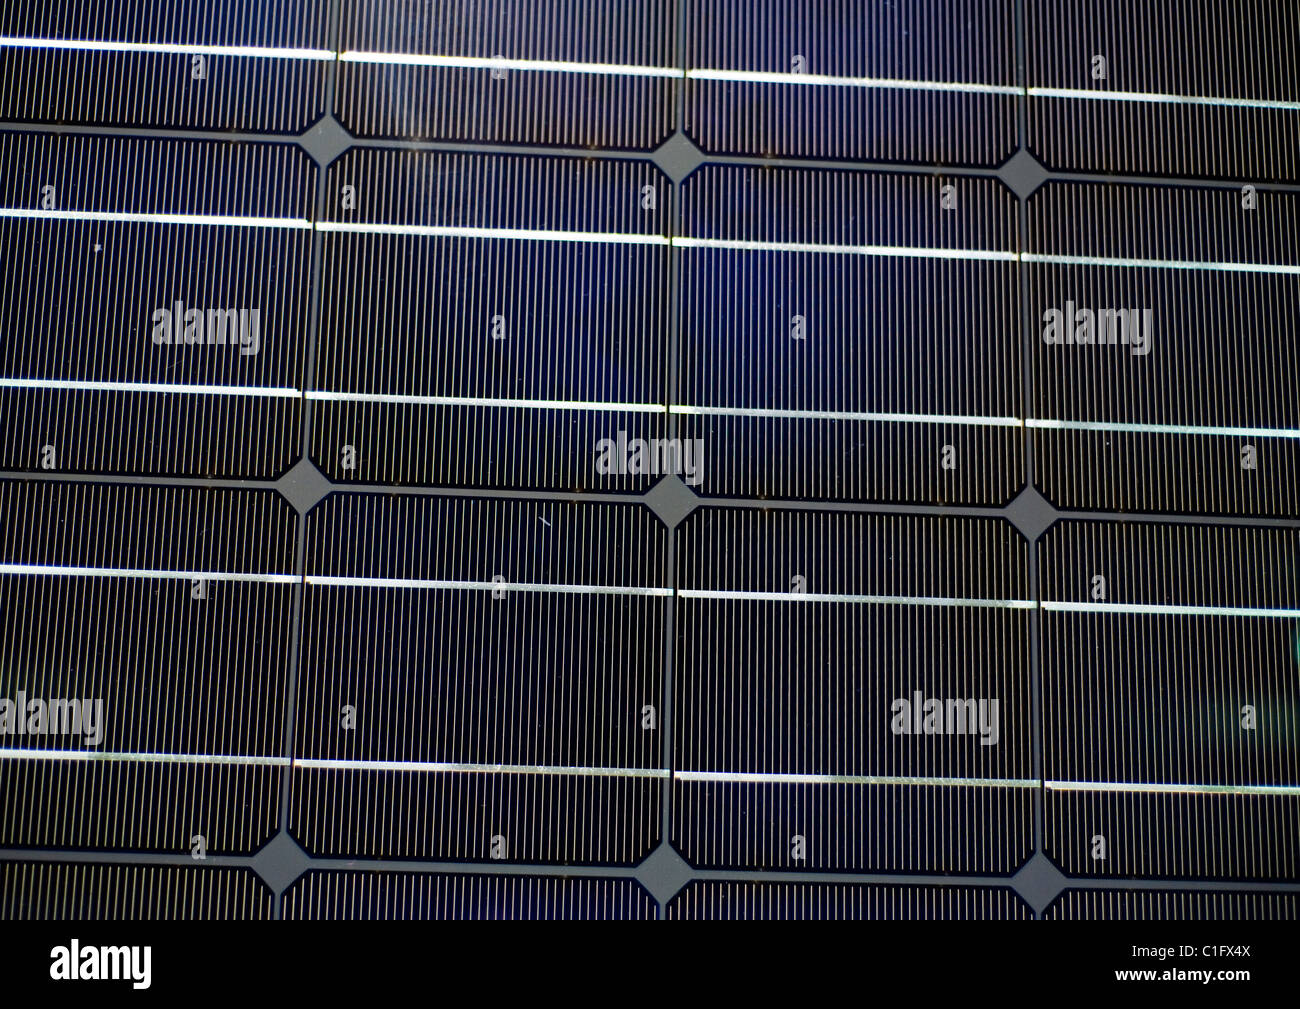 Exterior Renewable Energy Solar Cell, Solar Power panels, Detail 'Photovoltic cells' 'straight on' - Stock Image